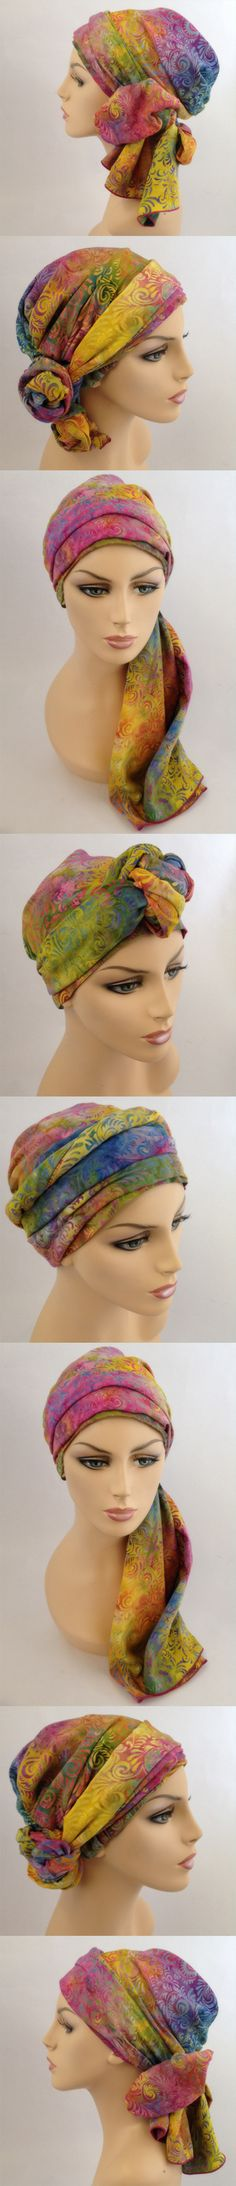 Turban Set is easy to tie in dozens of styles! Perfect for #chemo #alopecia